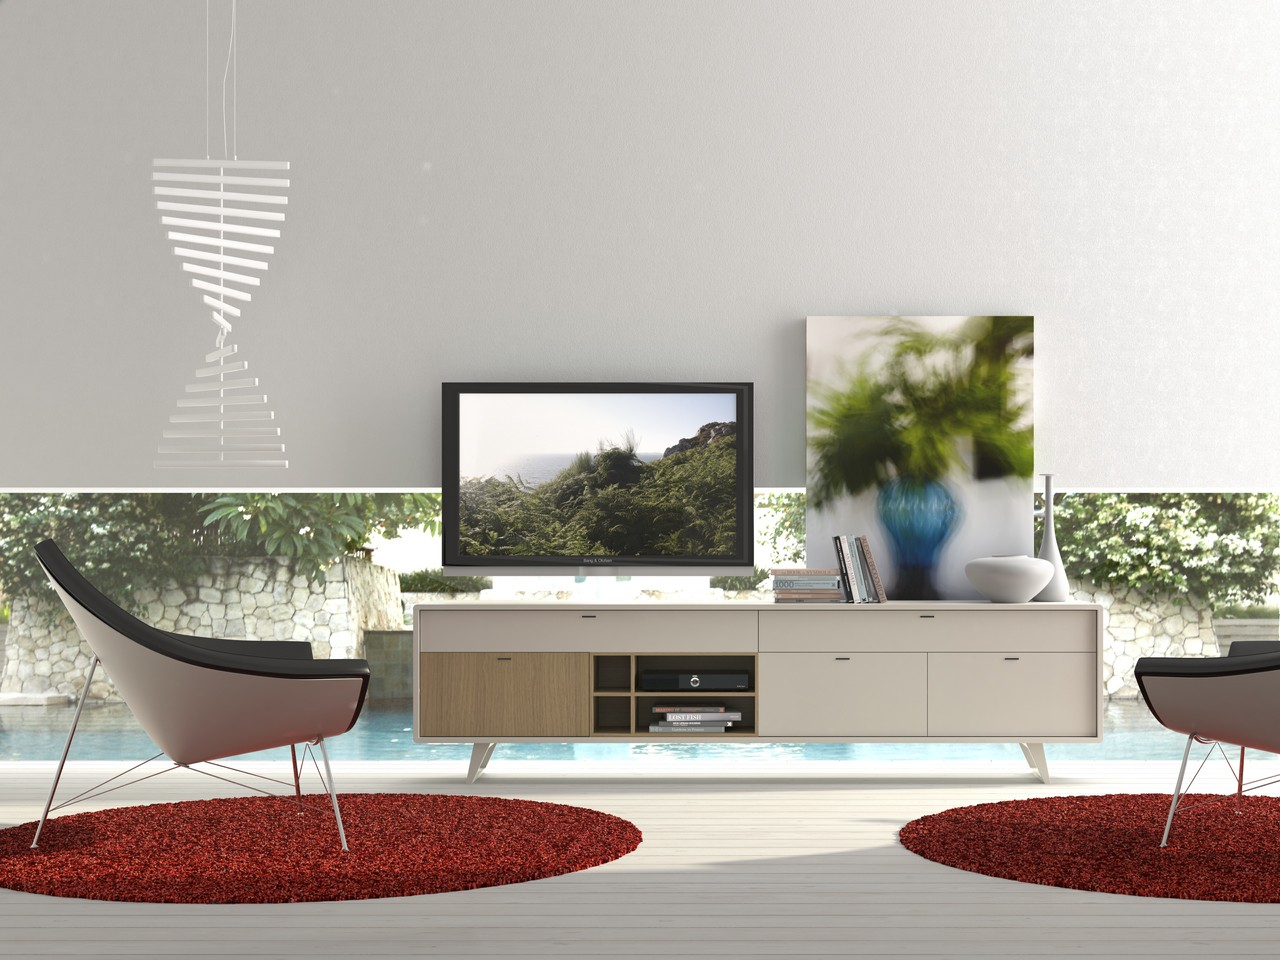 muebletv_roble_natural